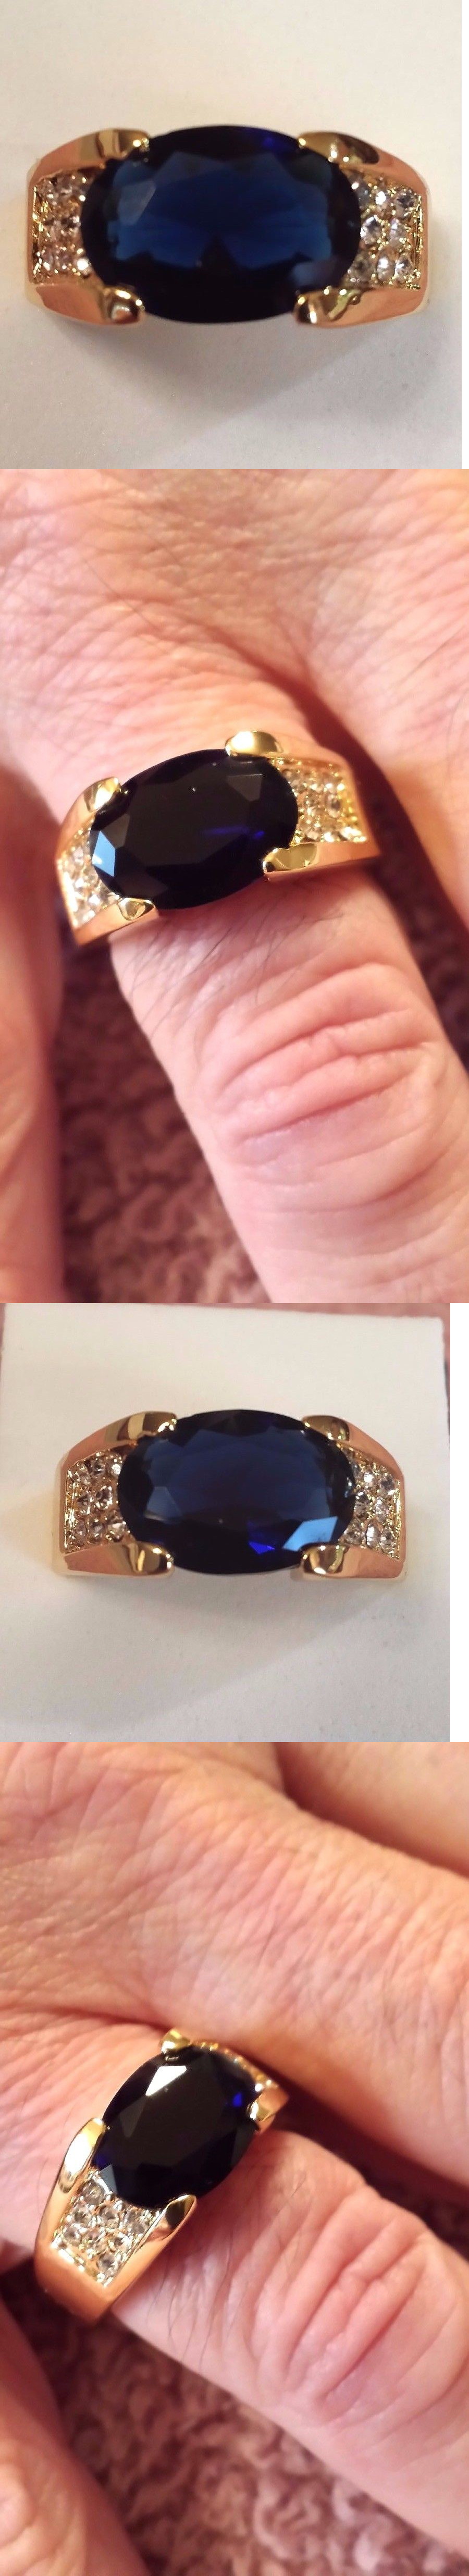 Men Jewelry: Mens 18K Yellow Gold Filled Sapphire Quartz And White ...